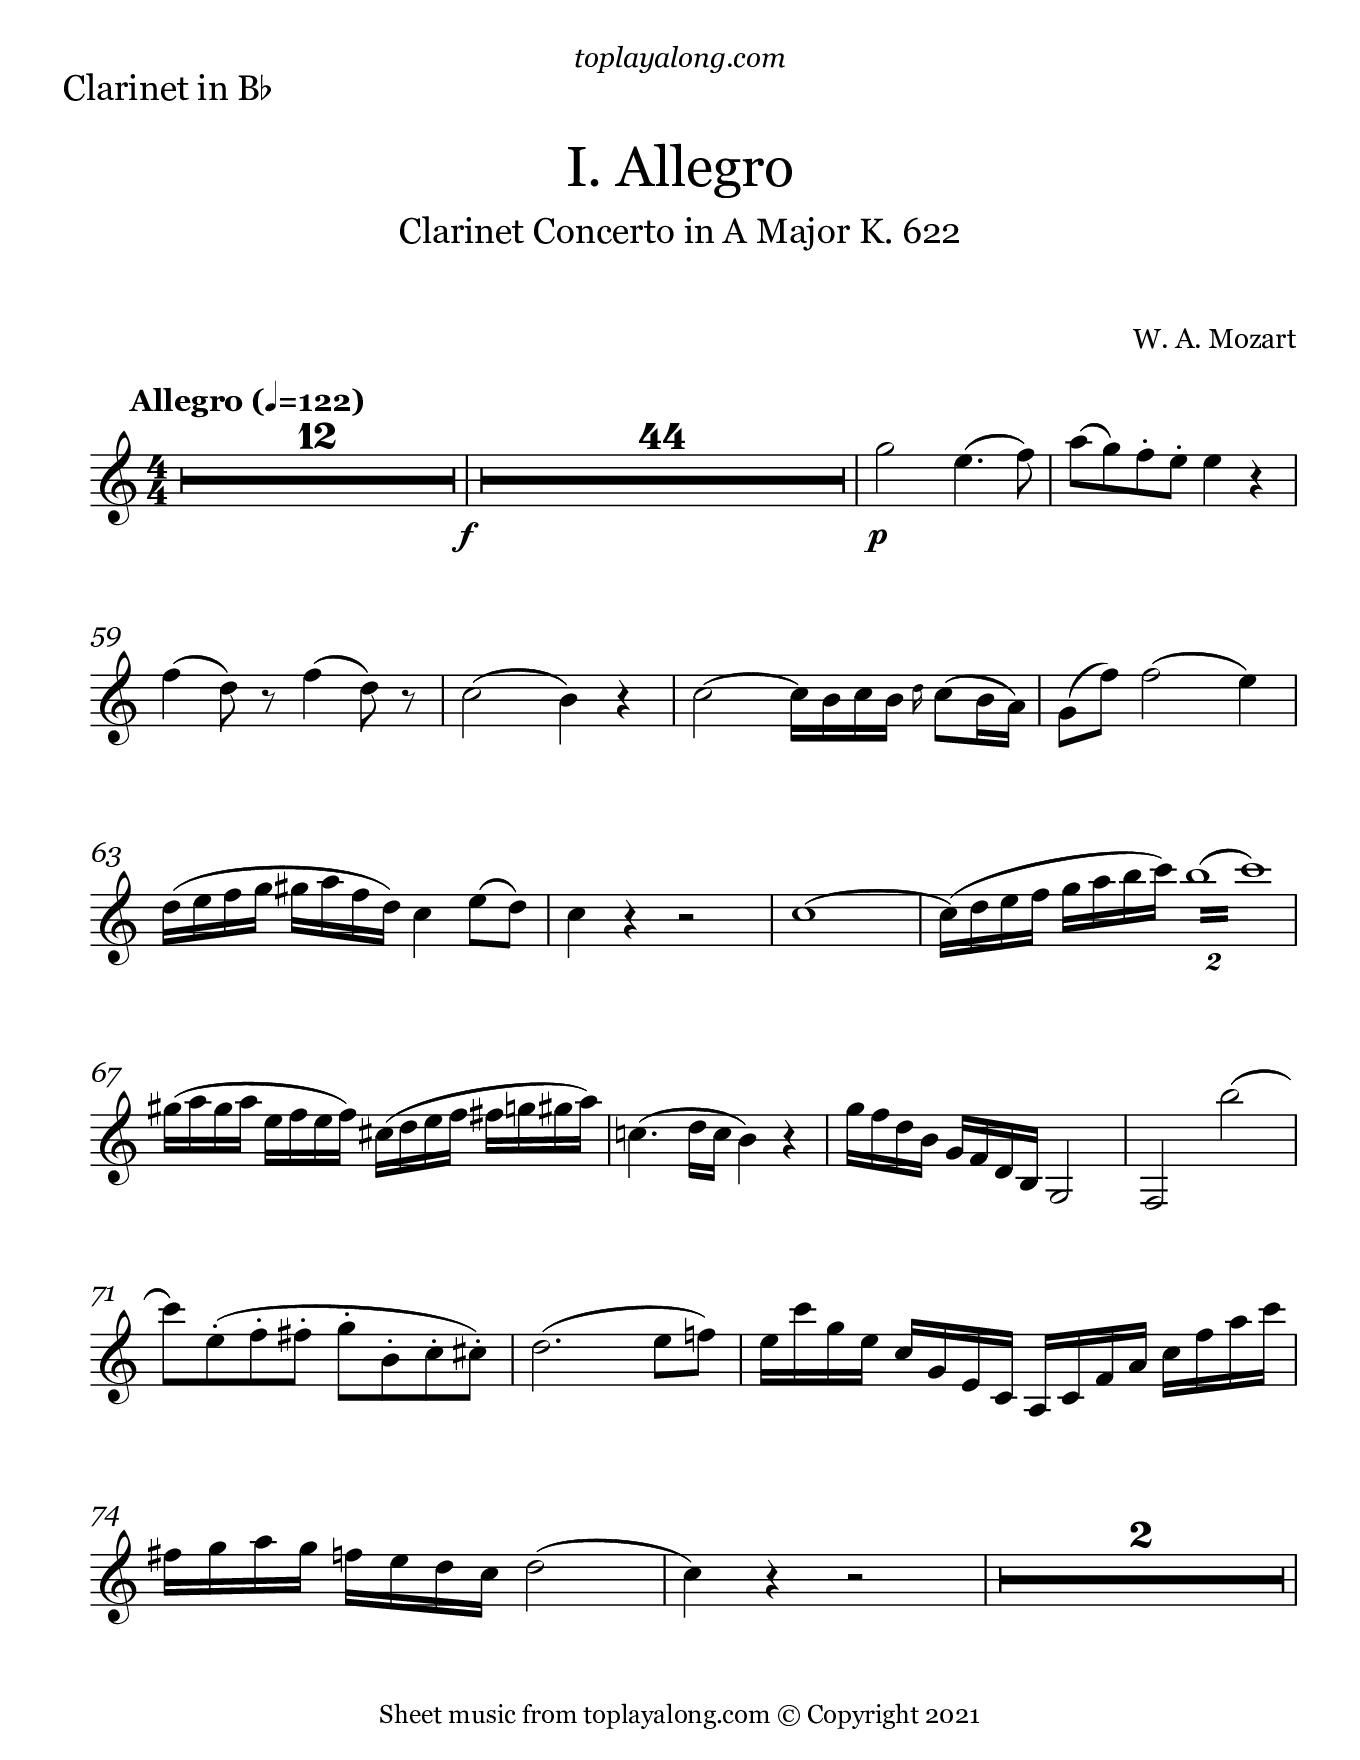 Clarinet Concerto in A Major (I. Allegro) by Mozart. Sheet music for Clarinet, page 1.